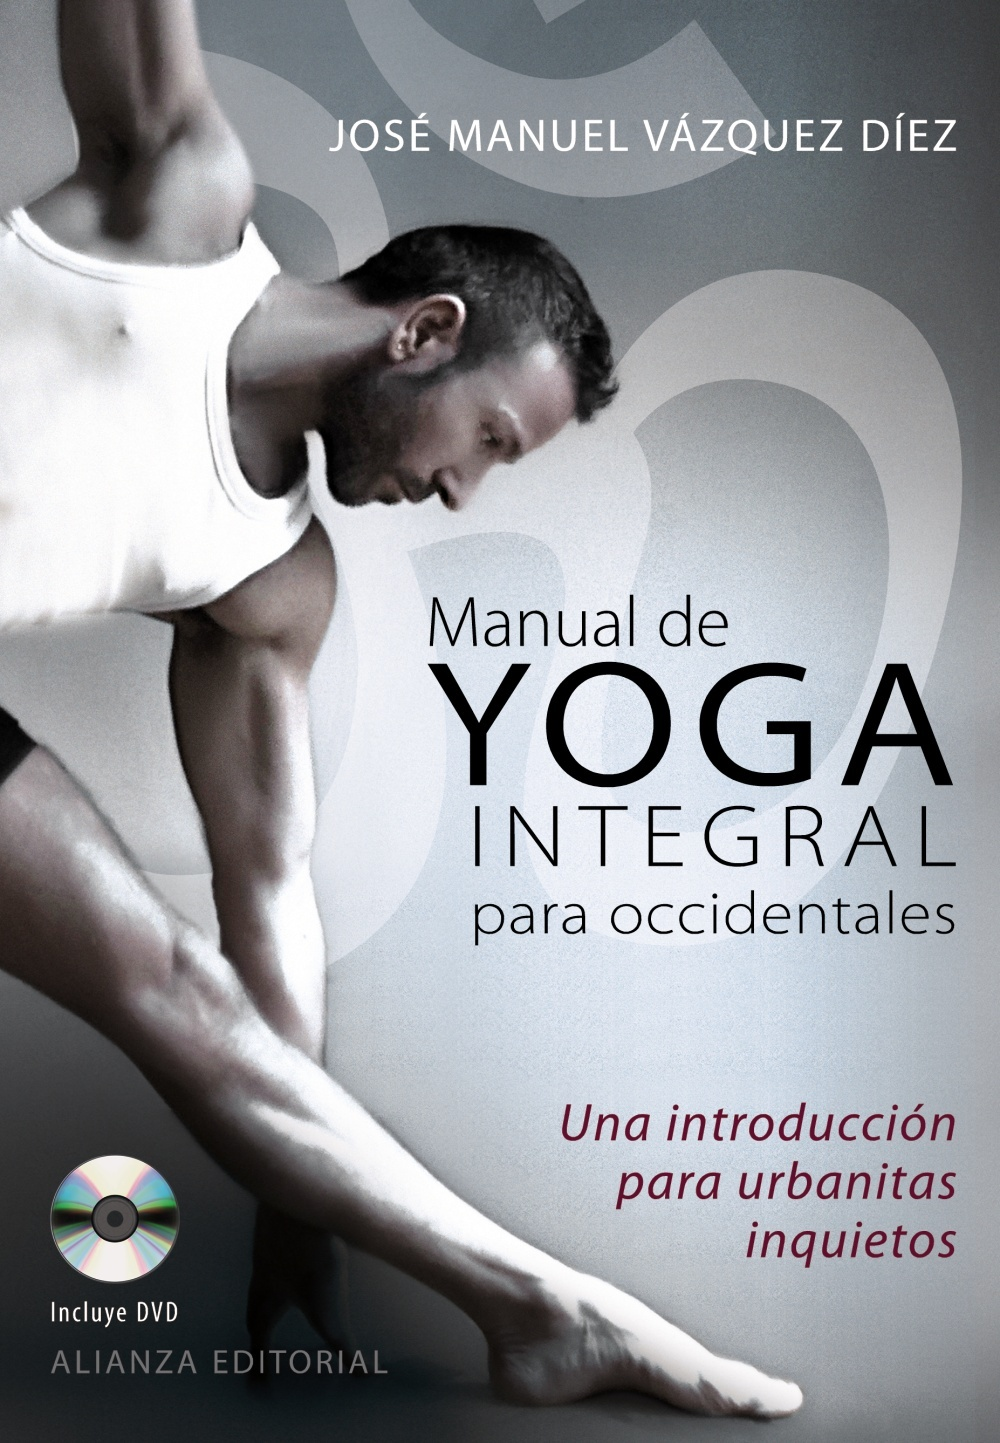 MANUAL DE YOGA INTEGRAL PARA OCCIDENTALES. UNA INTRODUCCIÓN PARA URBANITAS INQUIETOS